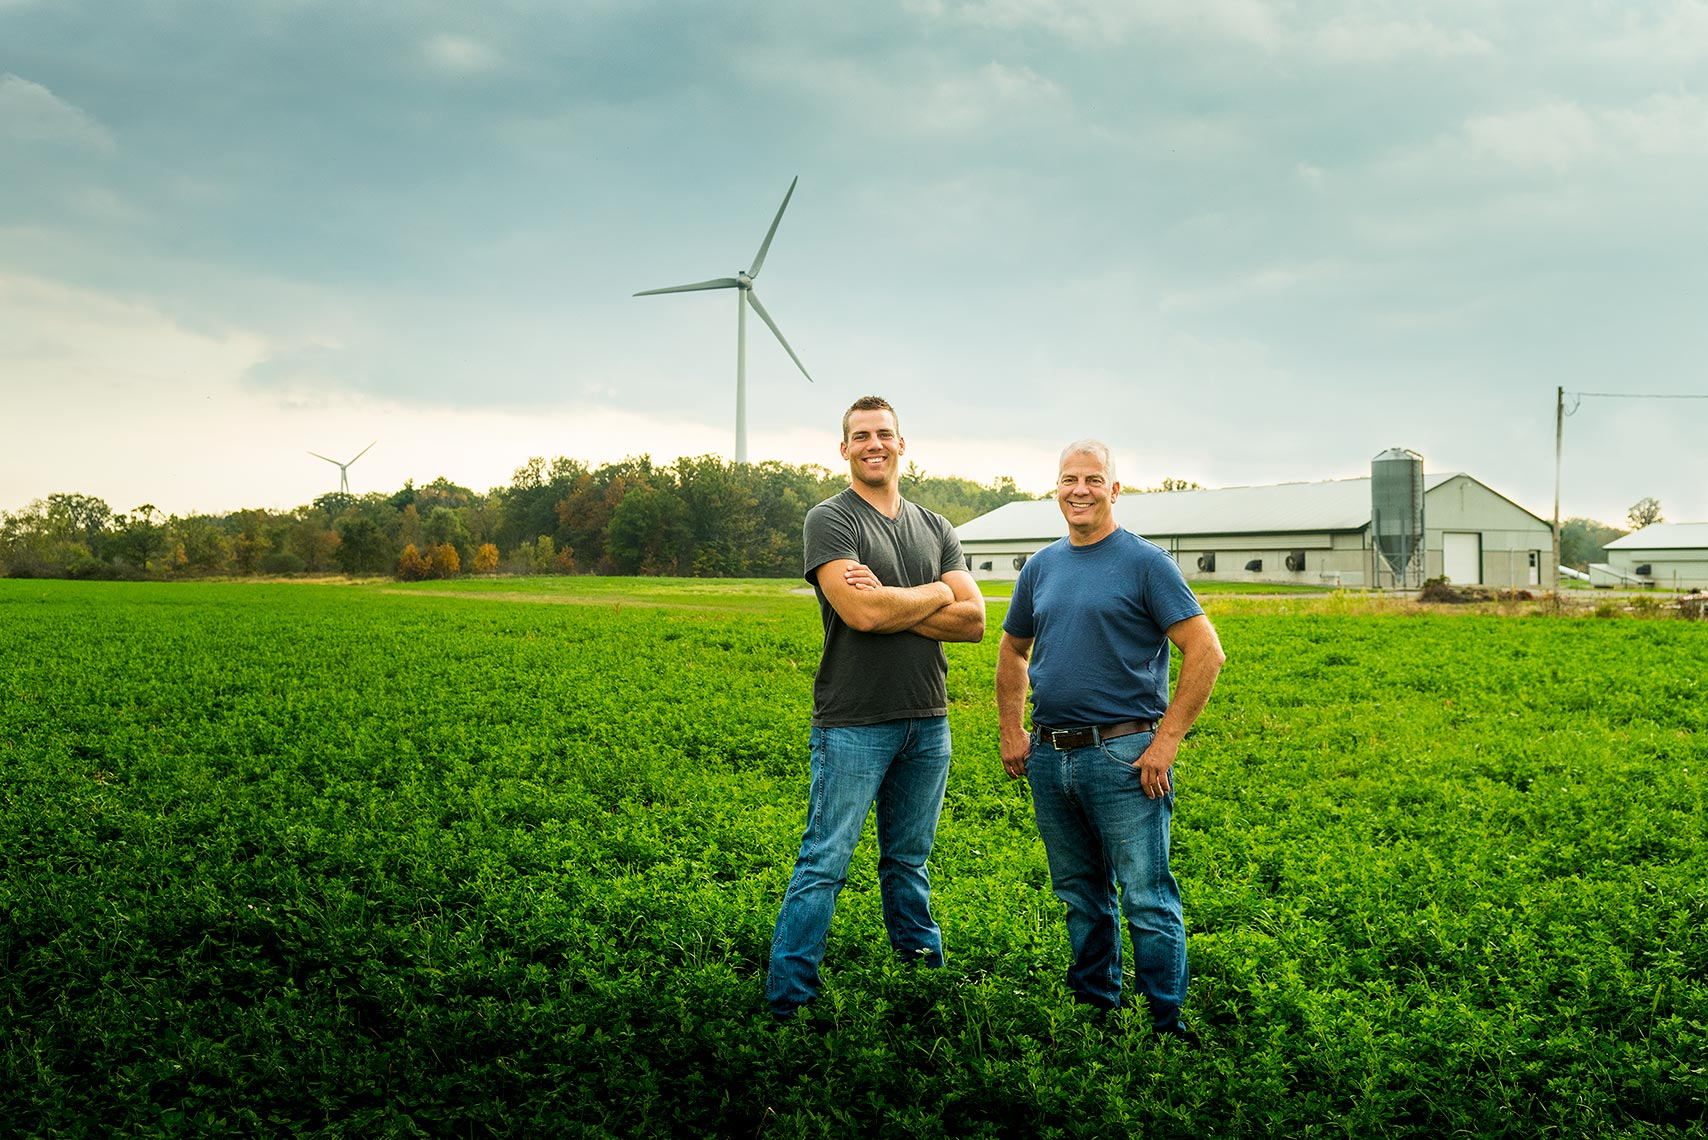 Farming and rural photographer Dean Casavechia